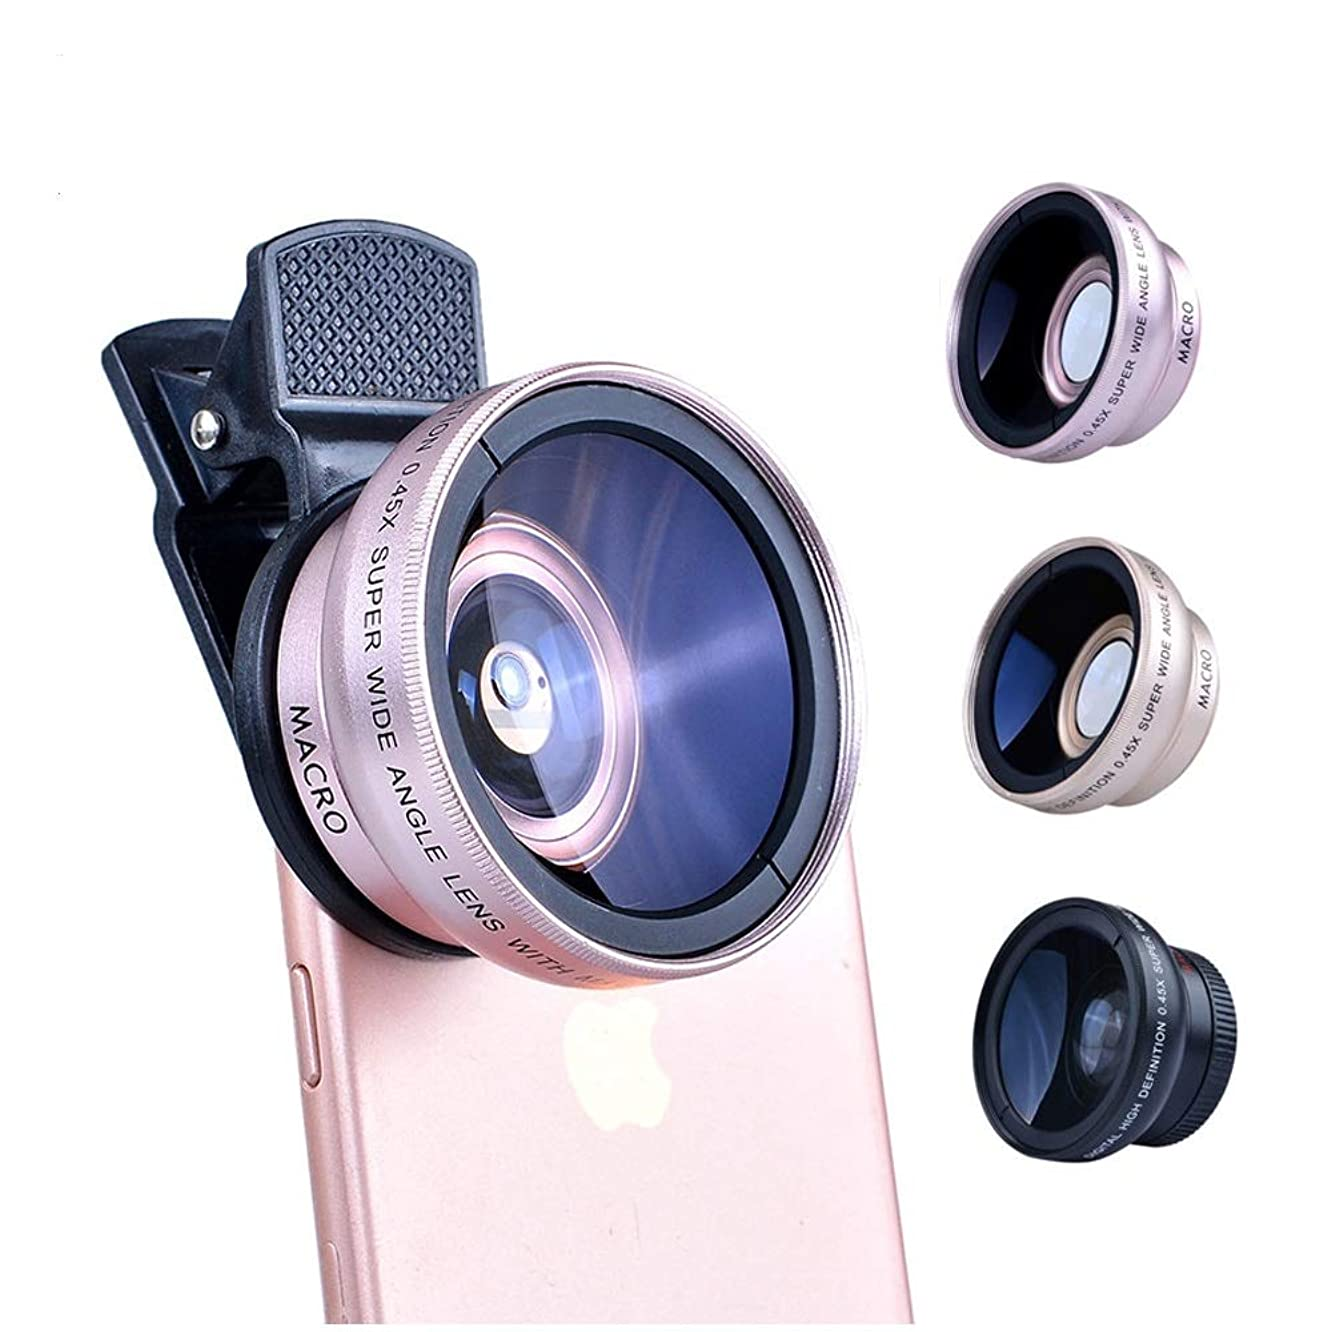 Phone Lens 2in1 Lens 0.45X Wide Angle+12.5X Macro Lens Professional HD Phone Camera Lens for iPhone 8 7 6S Plus Xiaomi Samsung LG(Black)